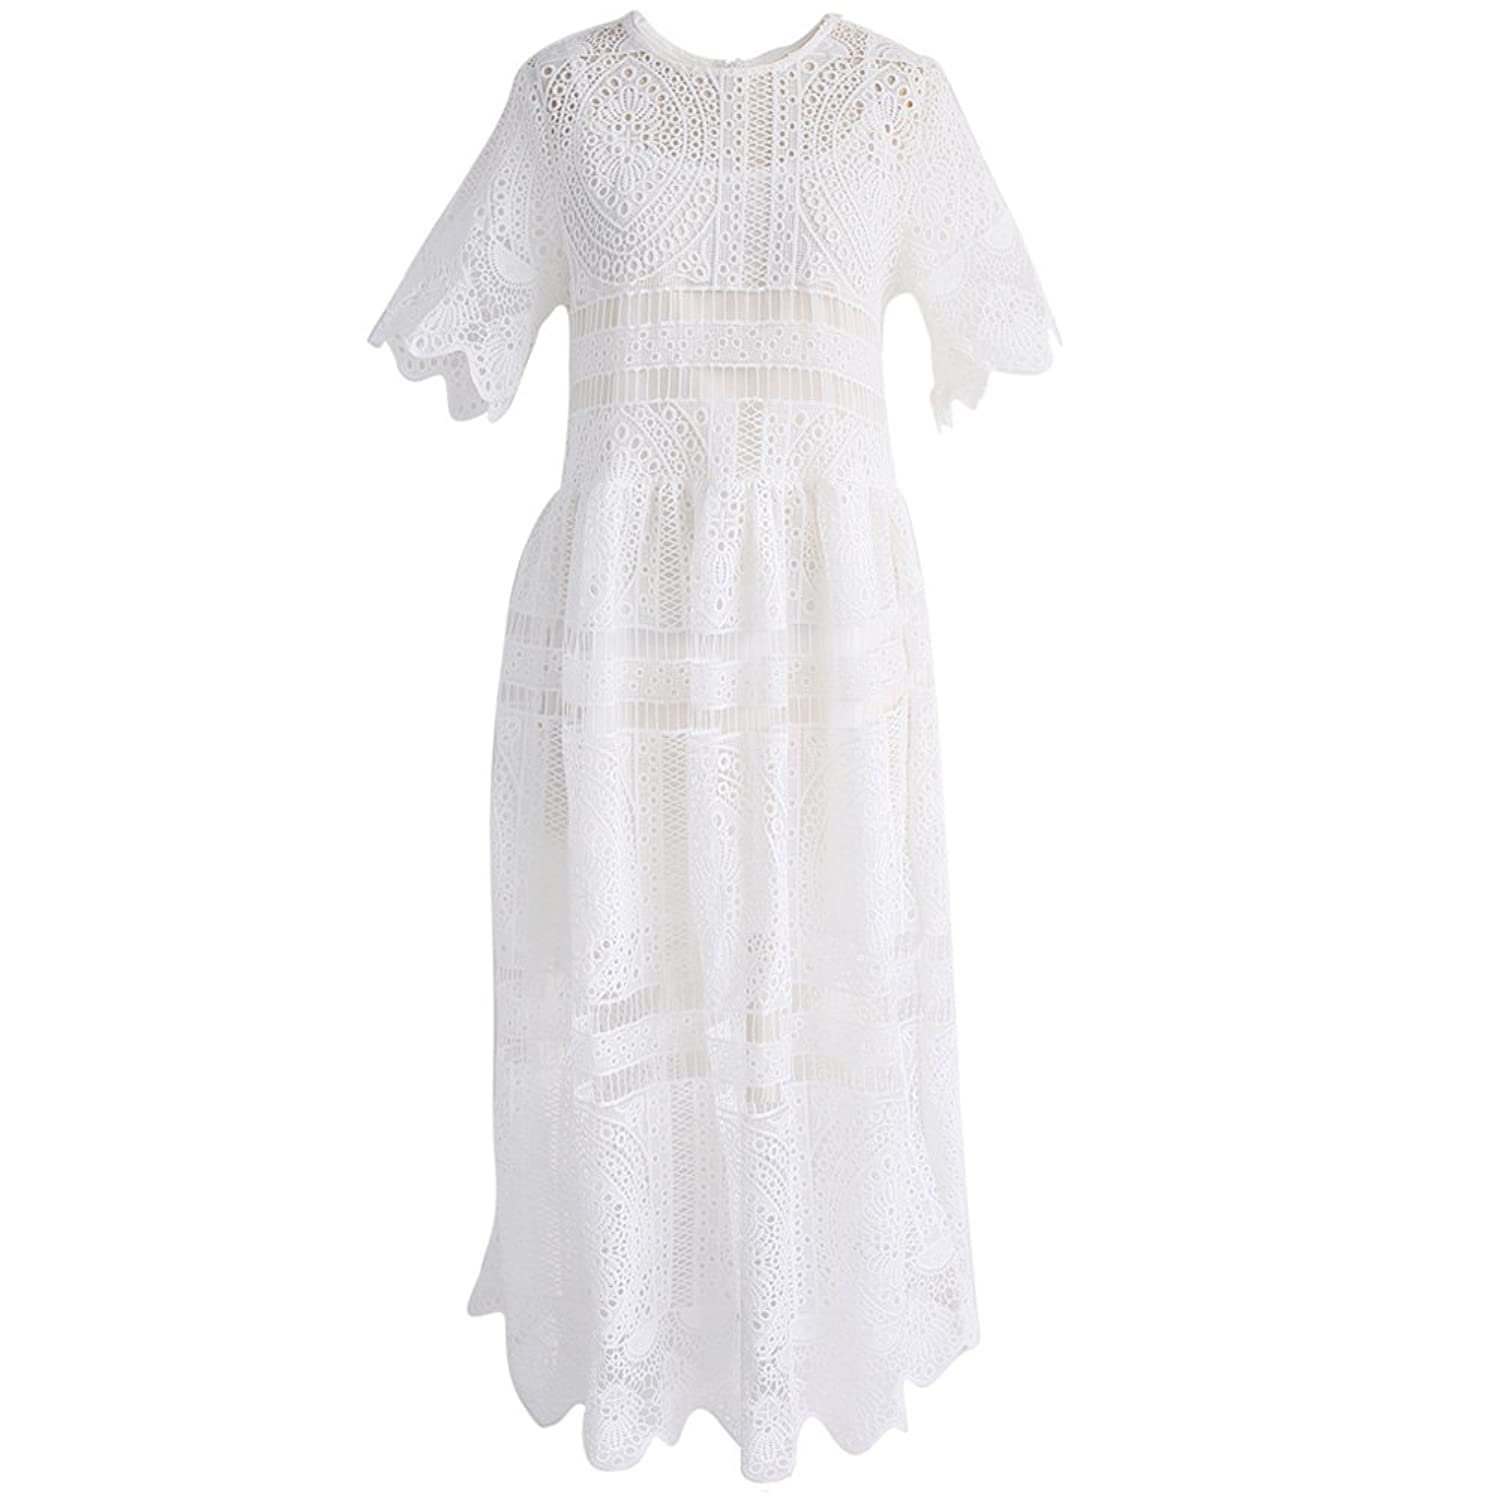 1920s Style Dresses, Flapper Dresses  Short Sleeves Round Neckline Lace Crochet Eyelet Midi Dress $59.93 AT vintagedancer.com